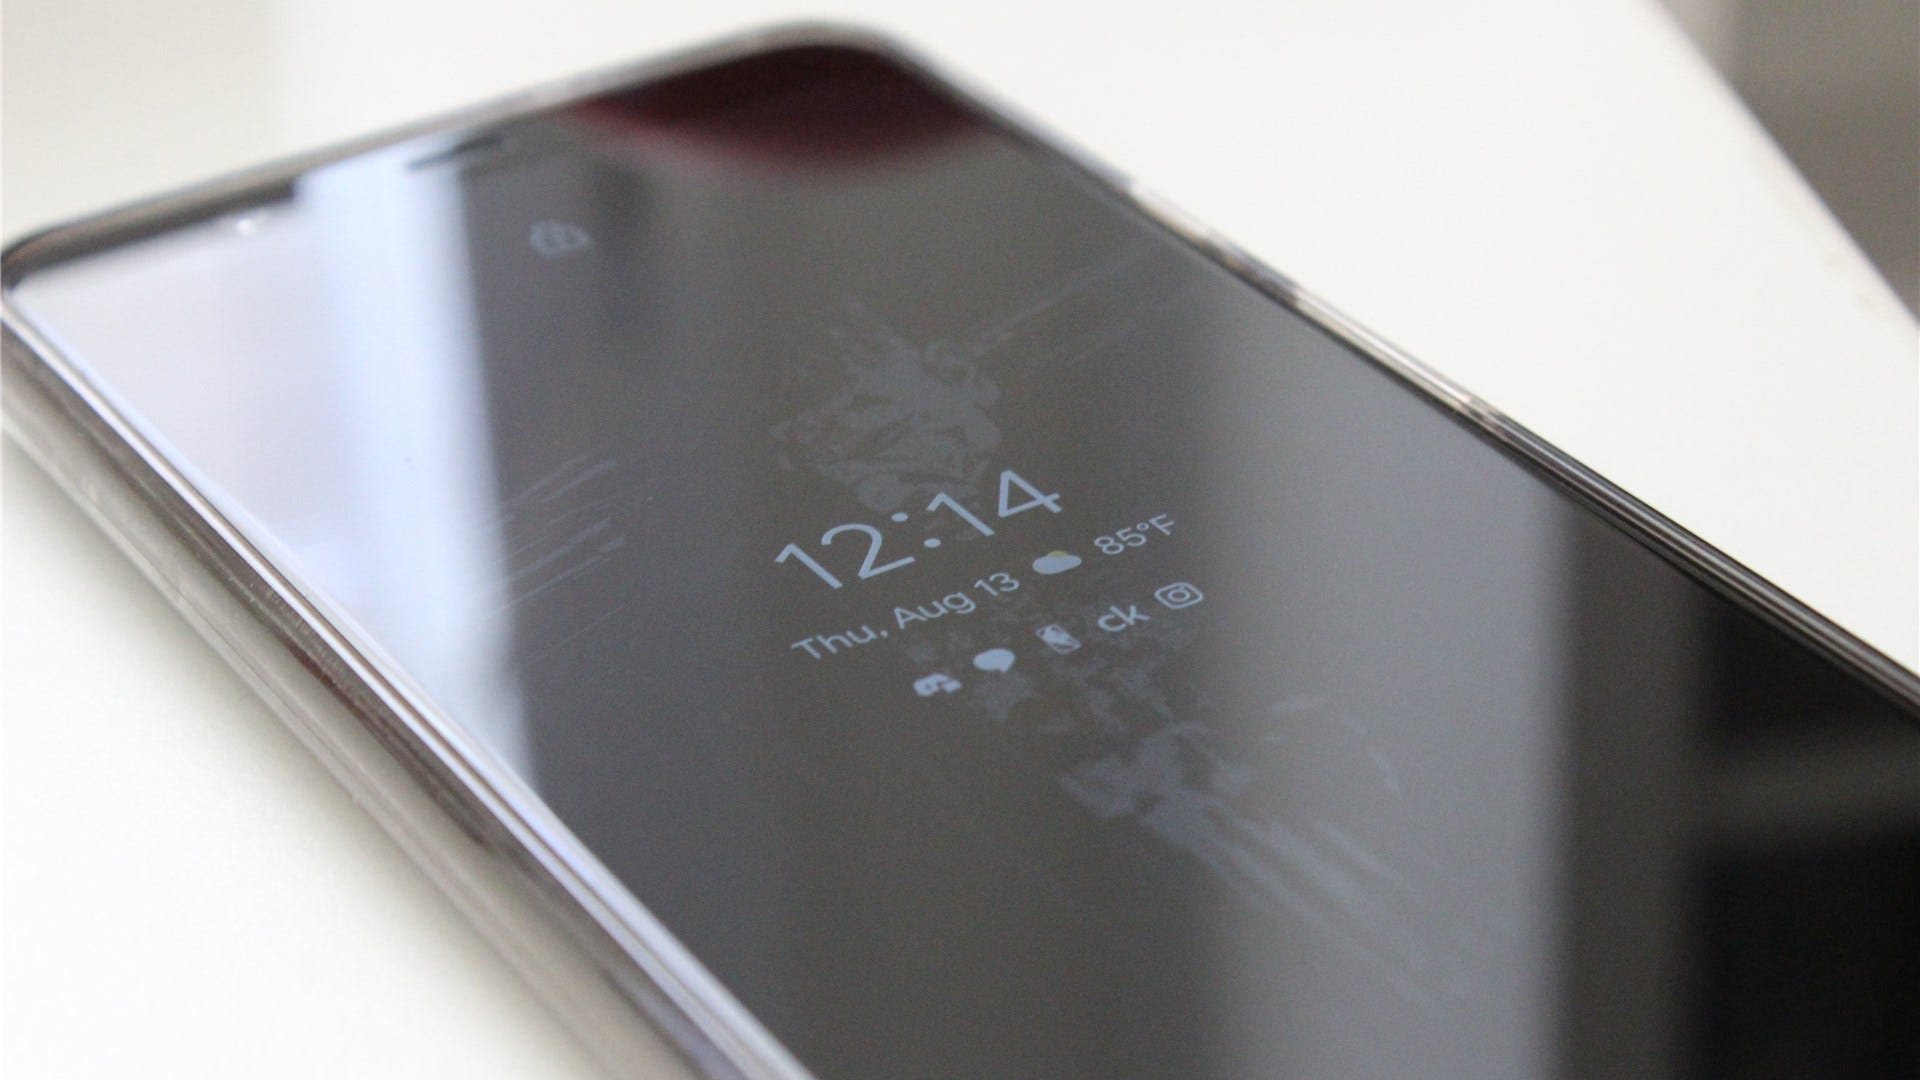 A Pixel 4XL showing several notifications in ambient mode